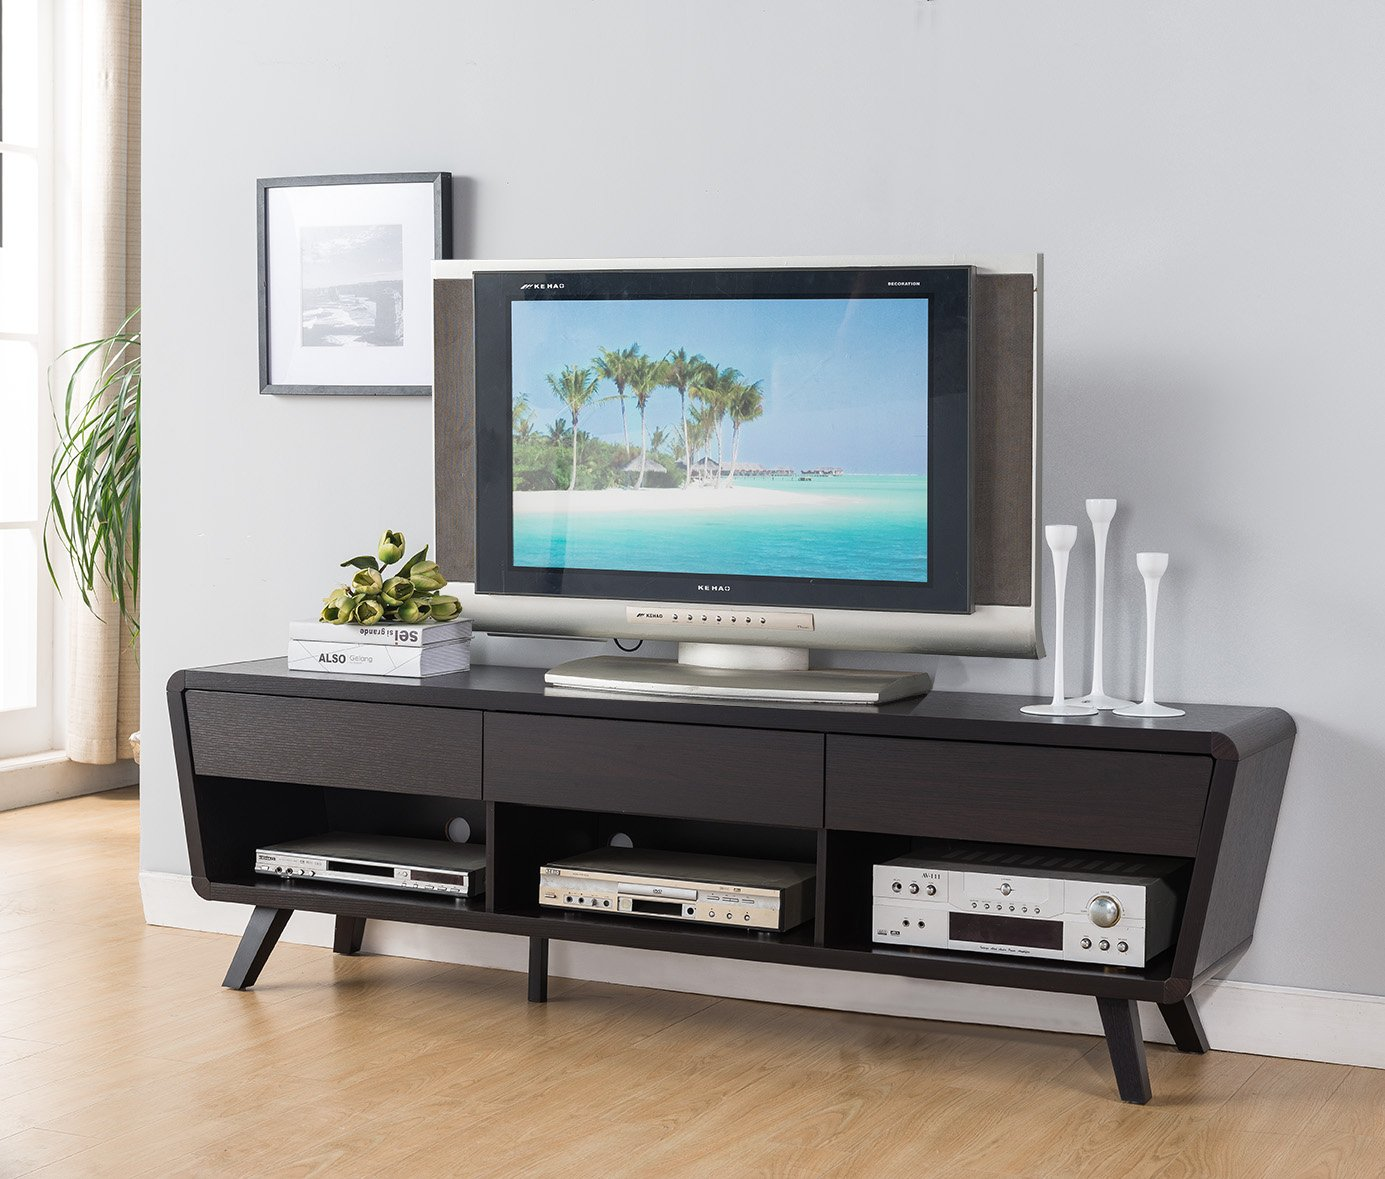 SMART HOME Suavis Media Console TV Stand (Red Cocoa) - 1 x Suavis Media Console TV Stand Finished in Red Cocoa Espresso Material: MDF and wood veneer for easy to clean - tv-stands, living-room-furniture, living-room - 71Nnj%2BeLLqL -